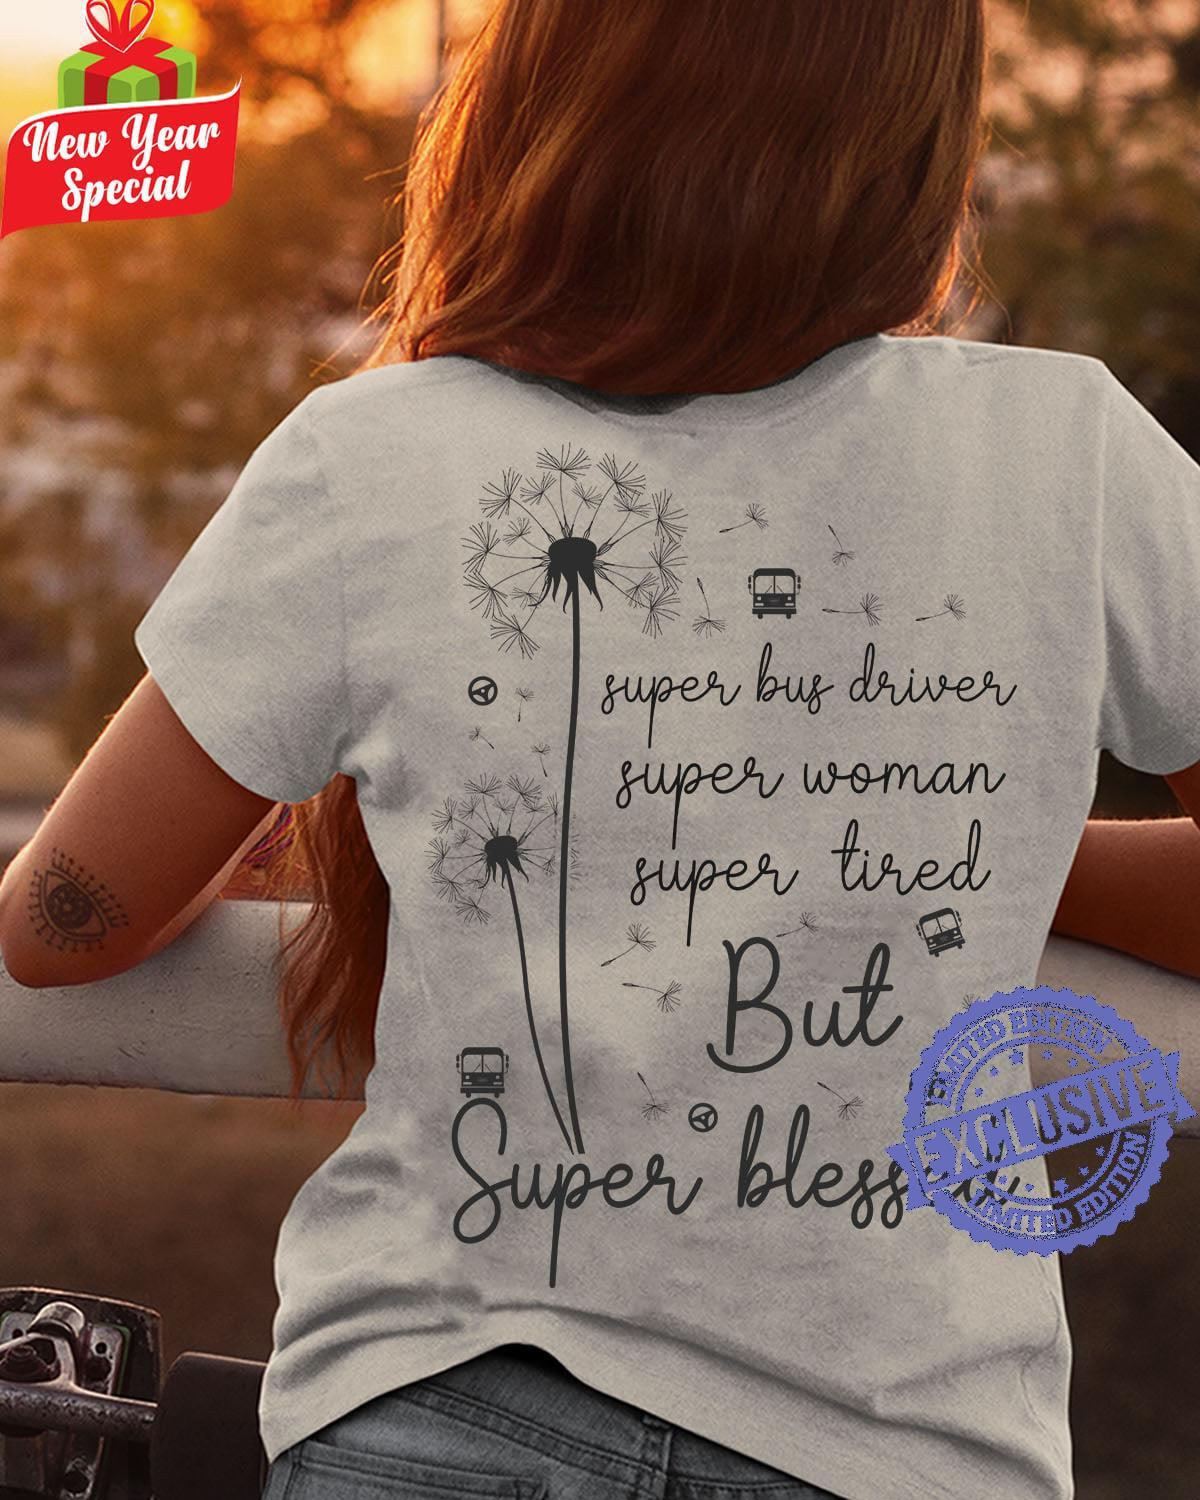 super bus driver super woman super tired but super blessed shirt